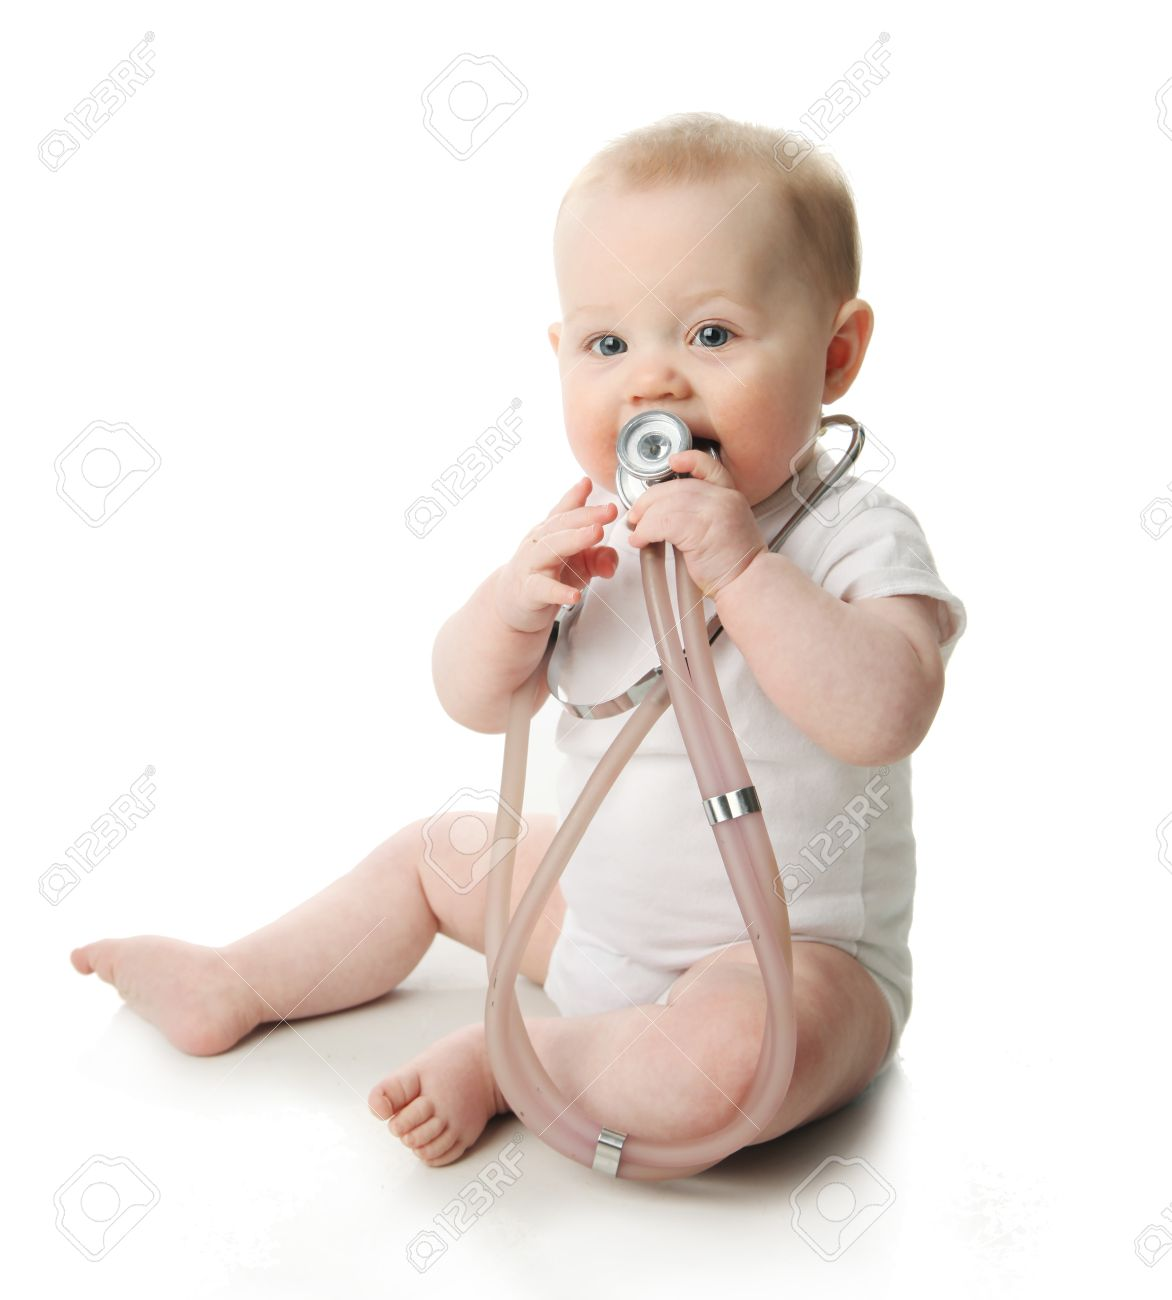 Portrait of a cute baby sitting playing with a stethoscope Stock Photo - 9939639